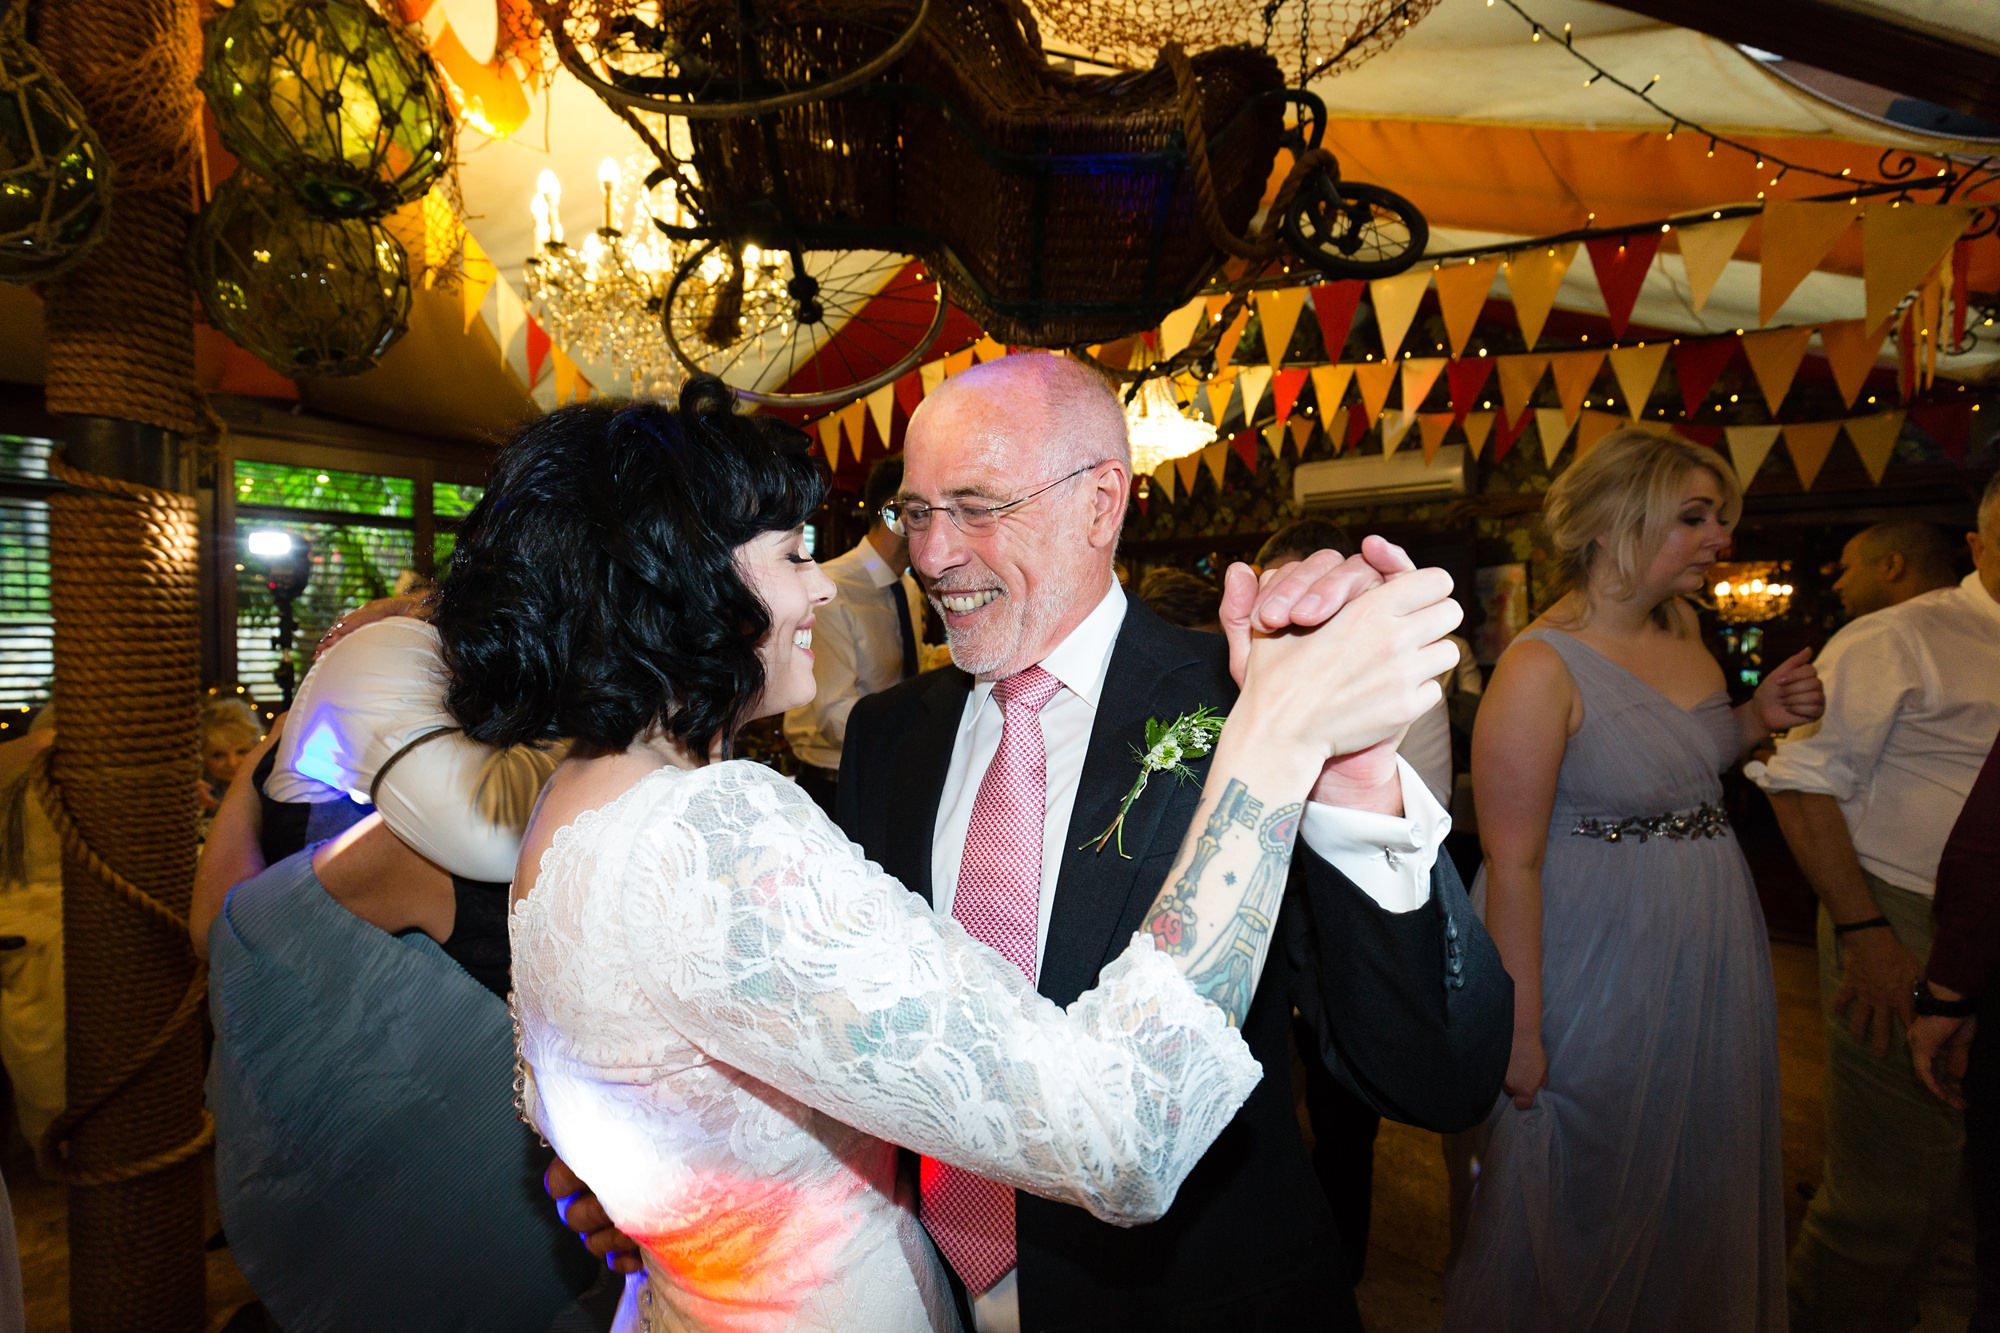 Yorkshire Wedding Photography at Crab and Lobster bride dances with father